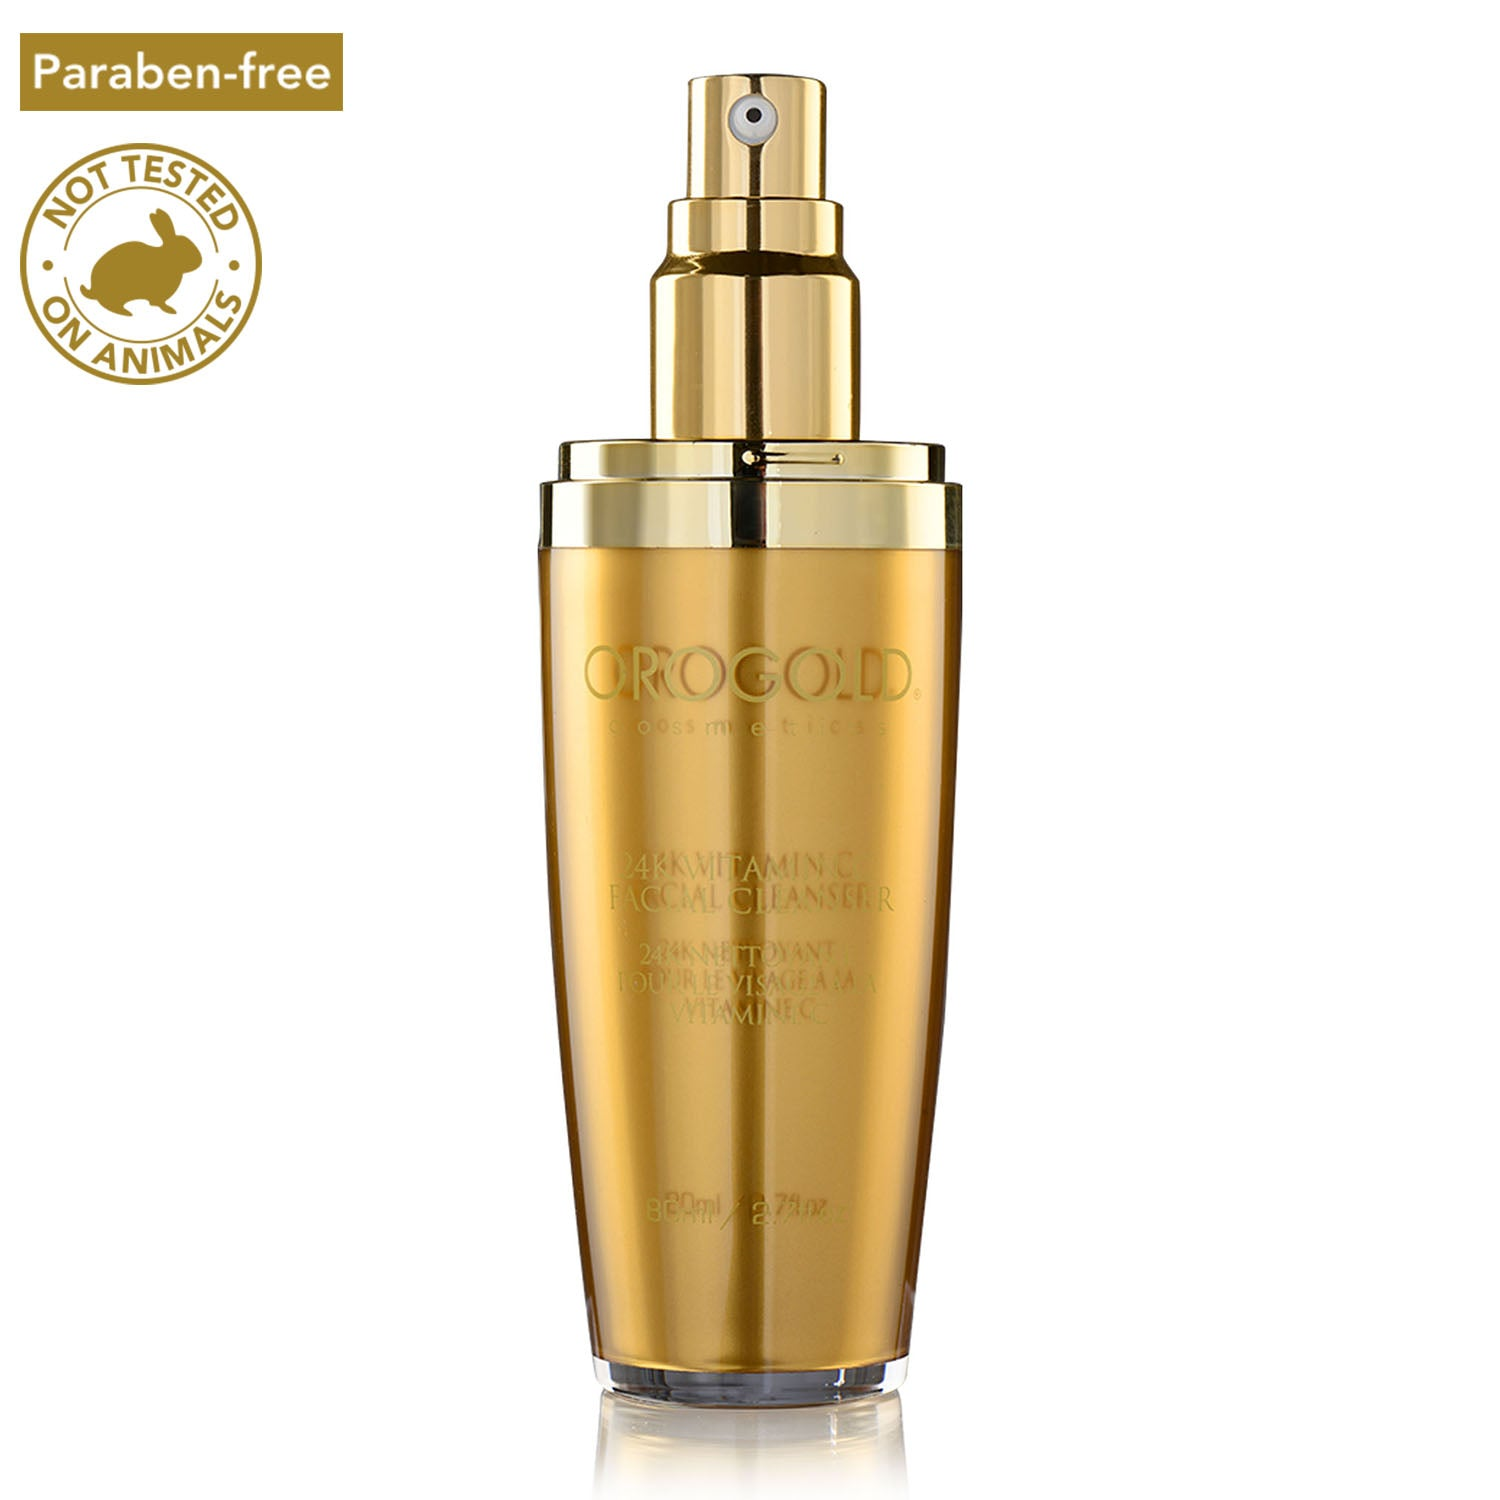 orogold 24k vitamin c facial cleanser